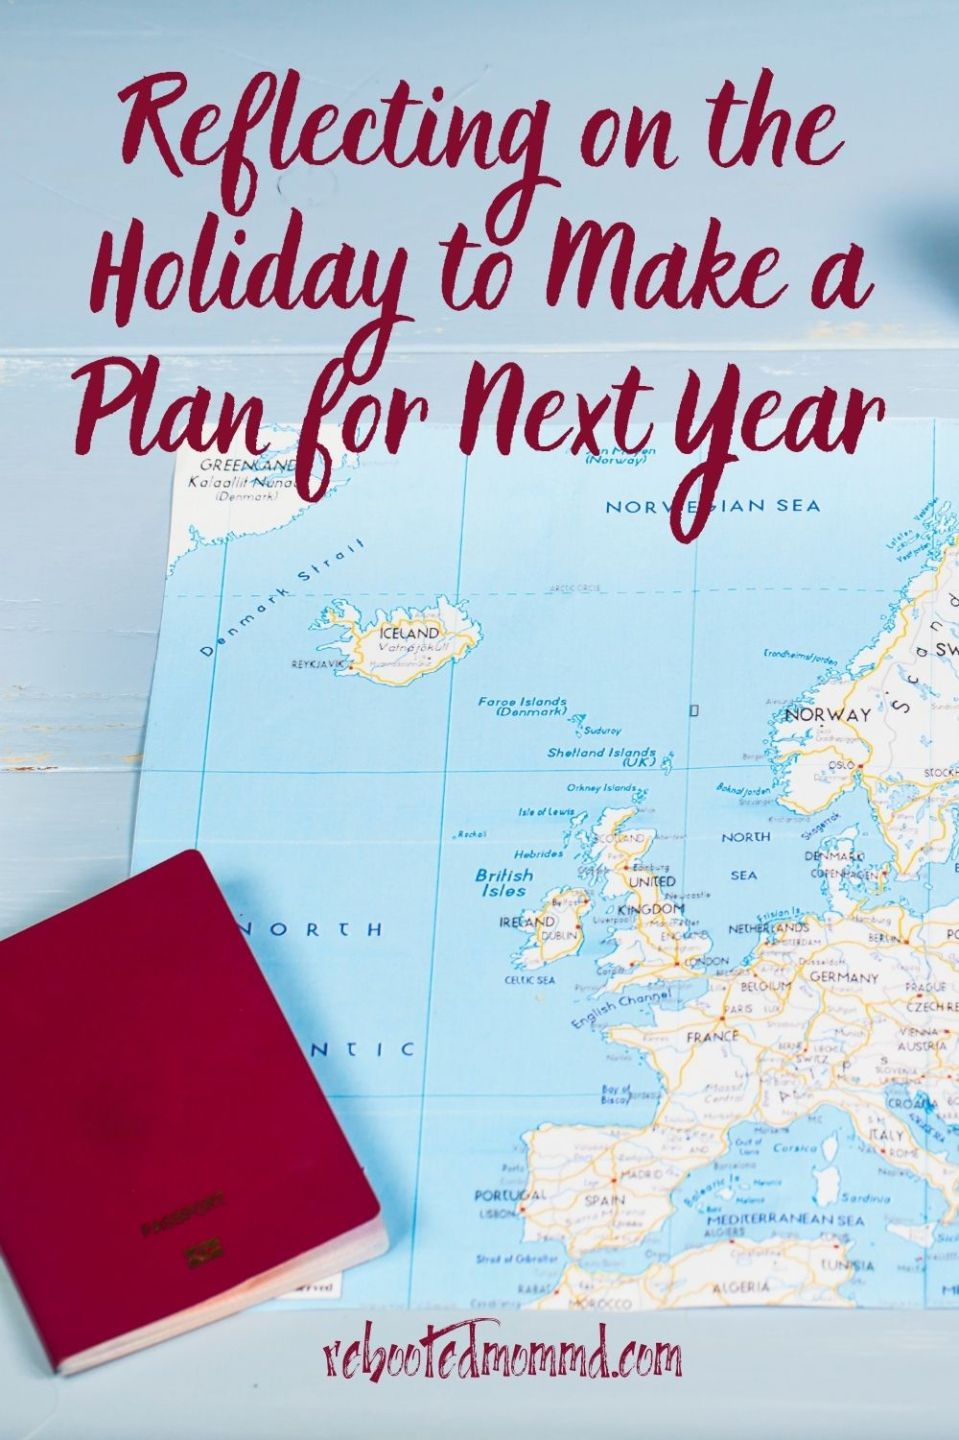 New Year, New You- Reflecting on the Holiday to Make a Plan for Next Year